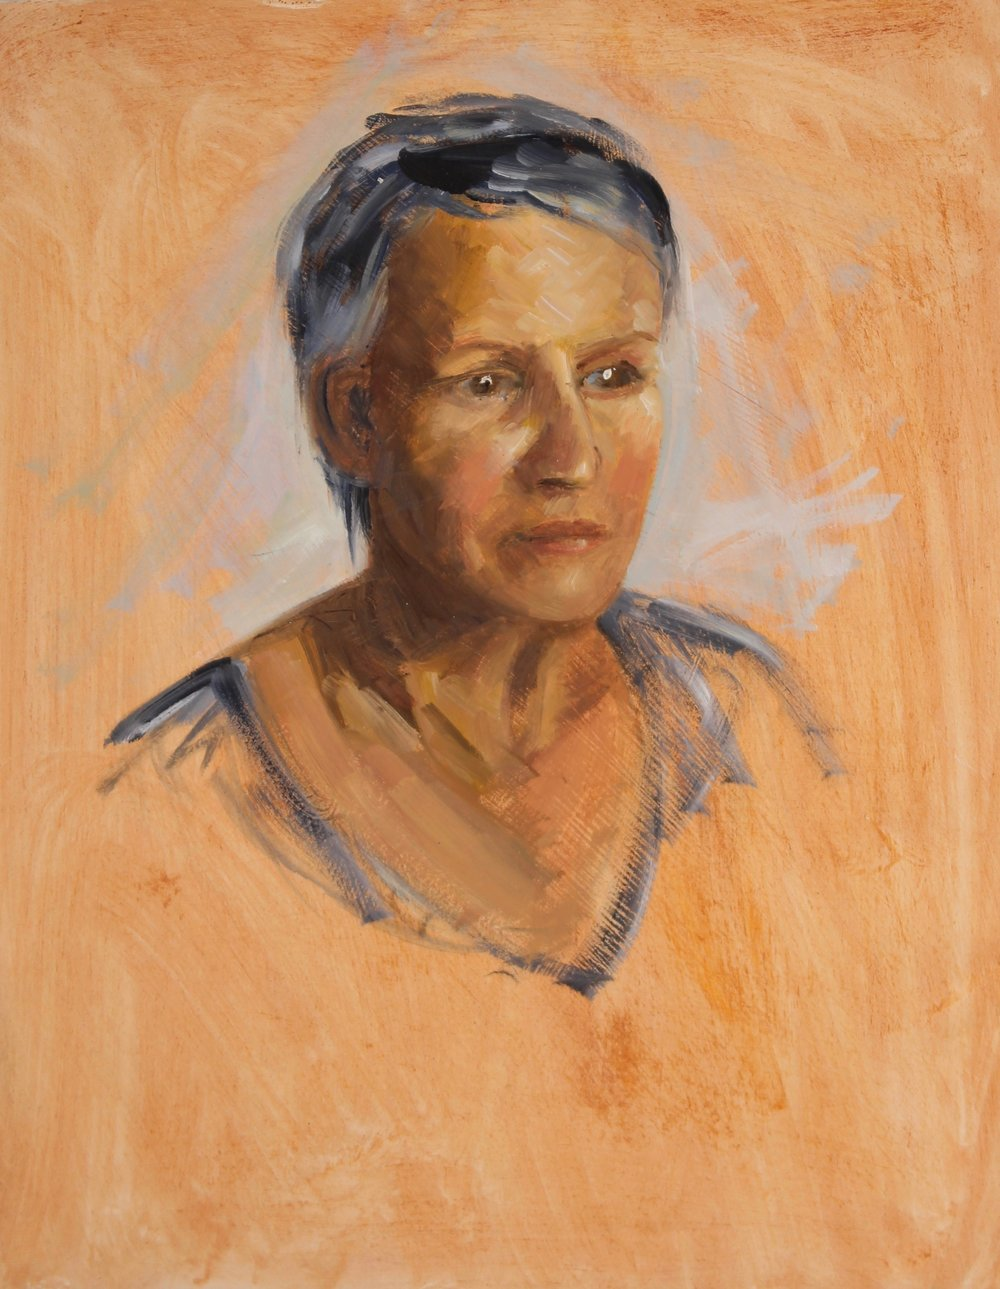 'Portrait of Mum' (oil on panel 14x11 inches)   I painted this picture one evening whilst on an extended family holiday in the South of France for my Mum's birthday.  Beautiful though she is, she wasn't the best model as she chatted, laughed and moved around far too much!!